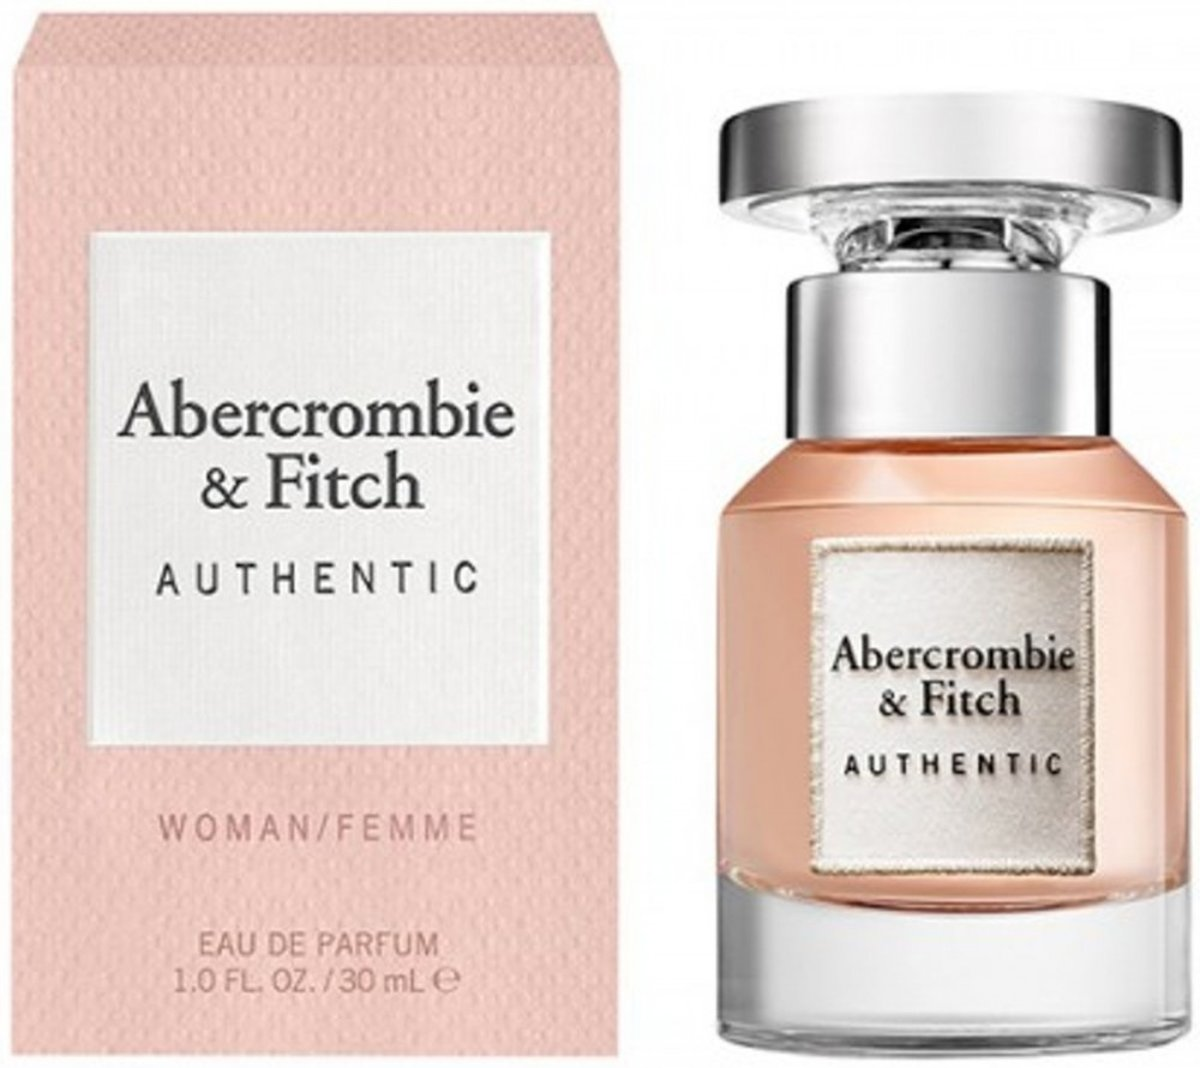 Abercrombie & Fitch Authentic Women Edp Spray 30ml